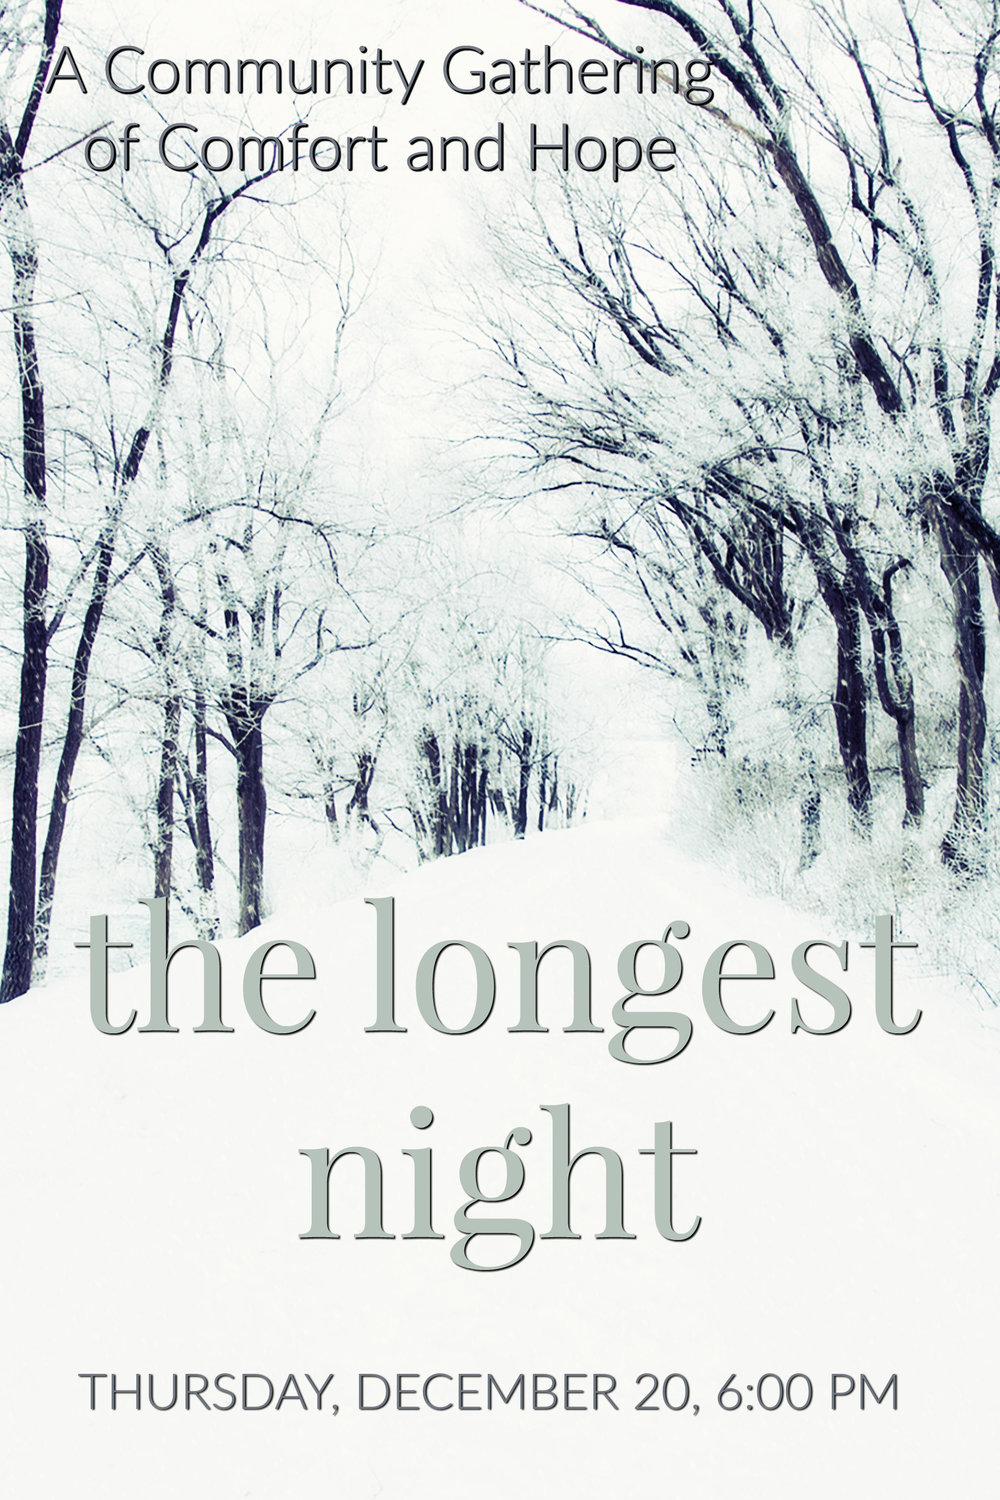 The Longest Nightnew2018.jpg